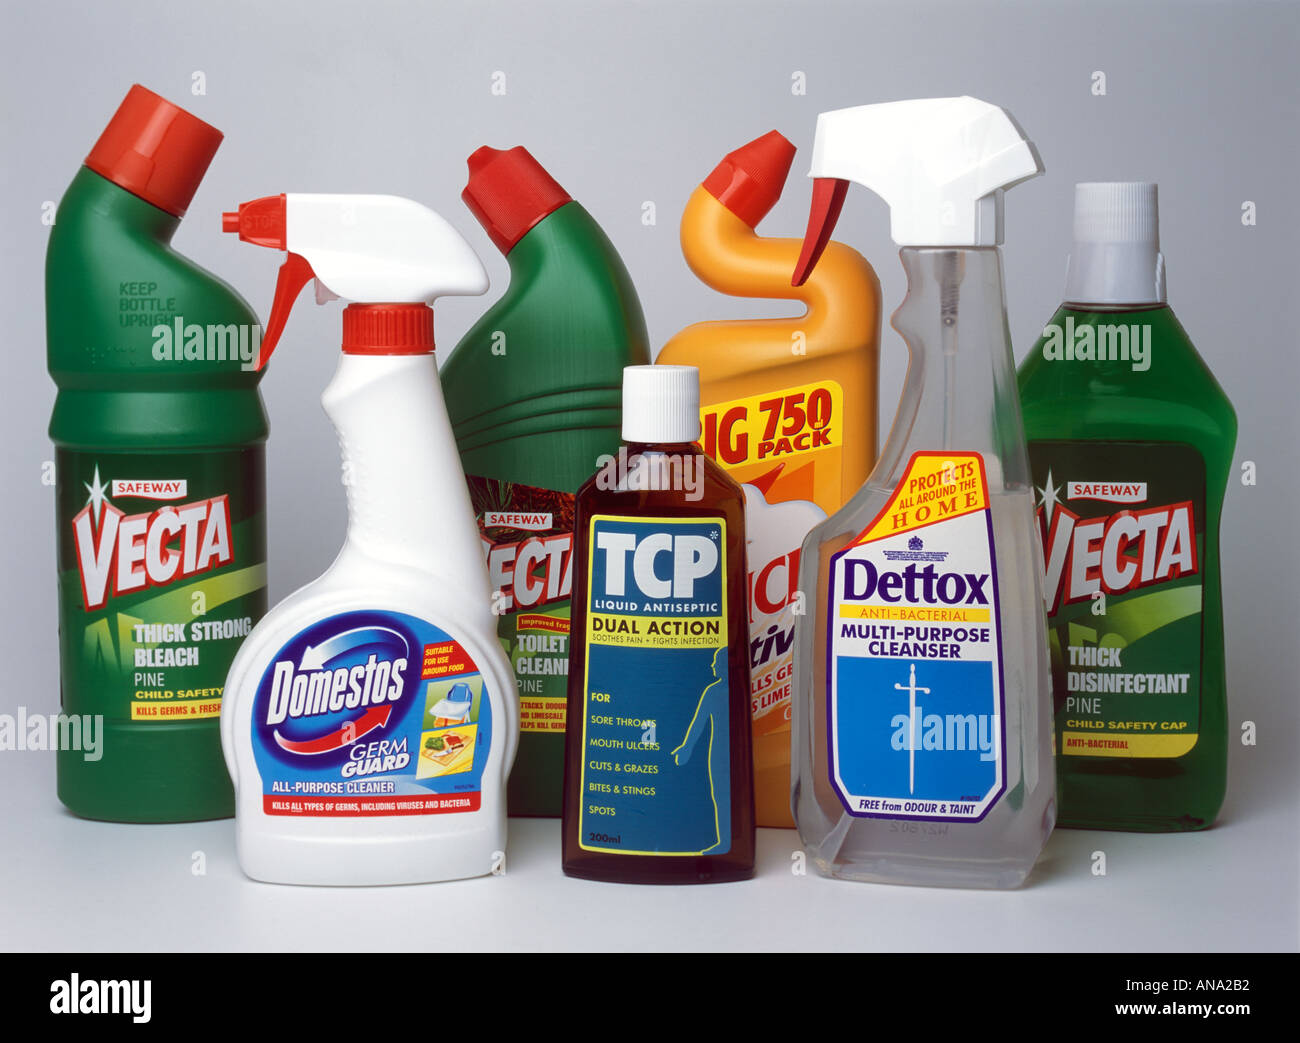 a selection of household cleaning materials and disinfectant typically used in kitchen and bathroom - Stock Image